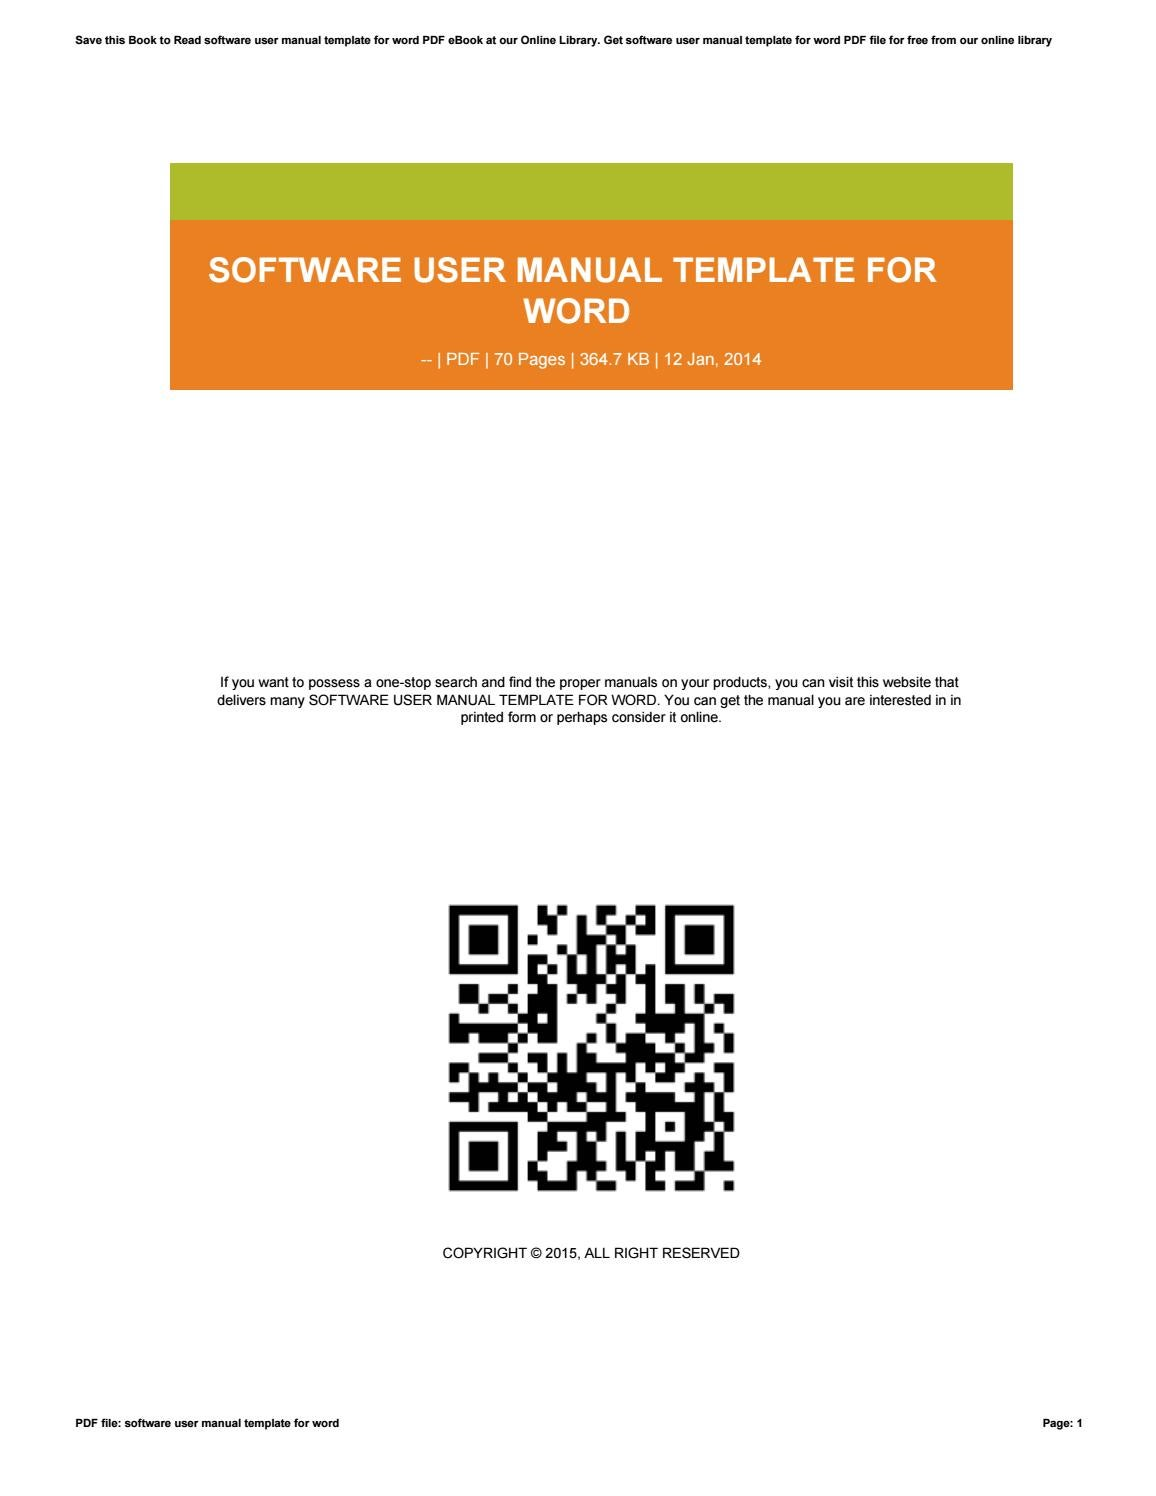 Software User Manual Template For Word By C9605 Issuu